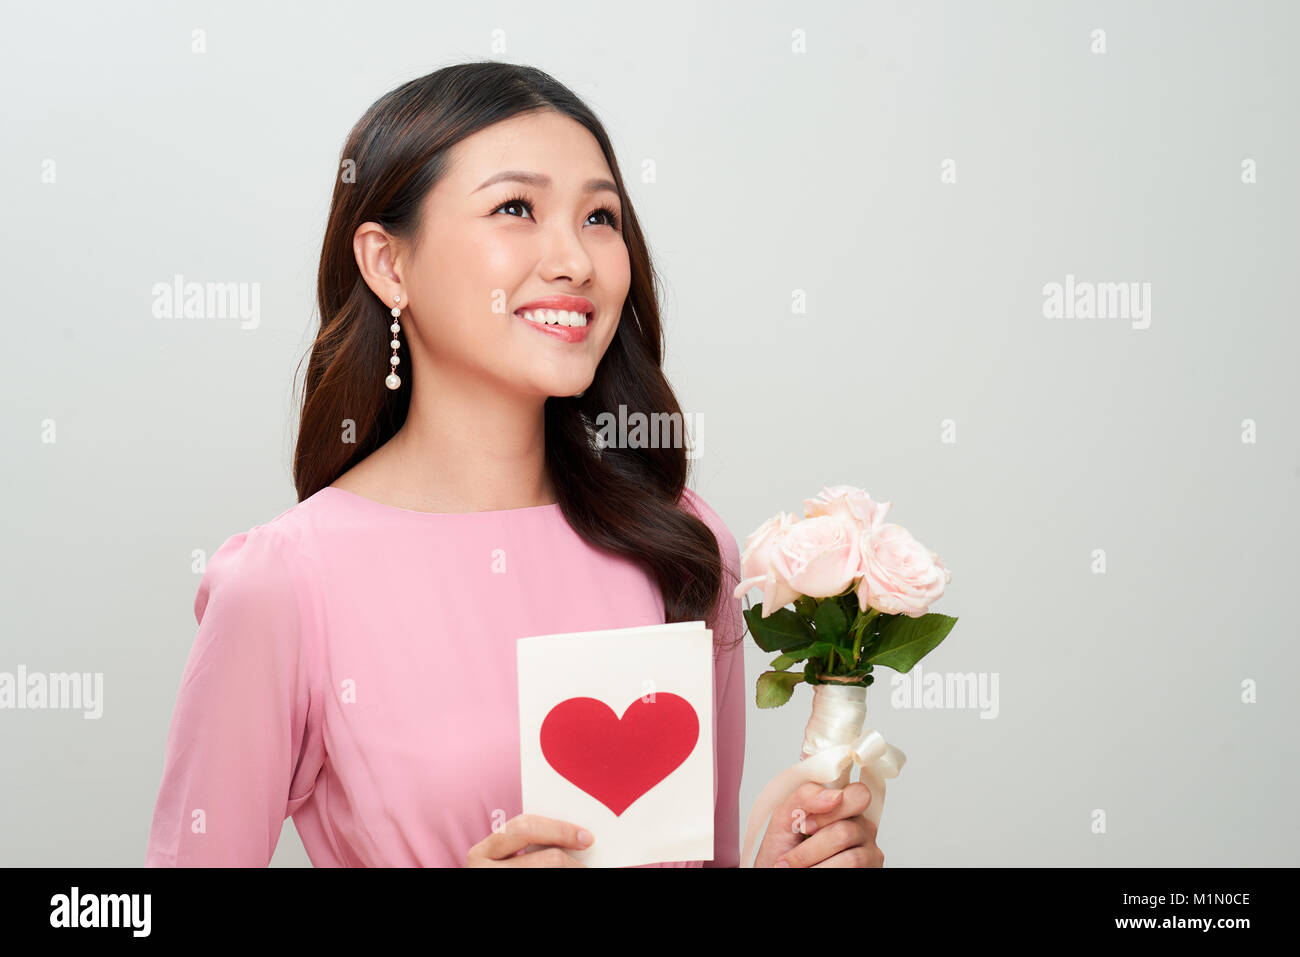 Beautiful girl with love letter and flowers happy woman day stock beautiful girl with love letter and flowers happy woman day izmirmasajfo